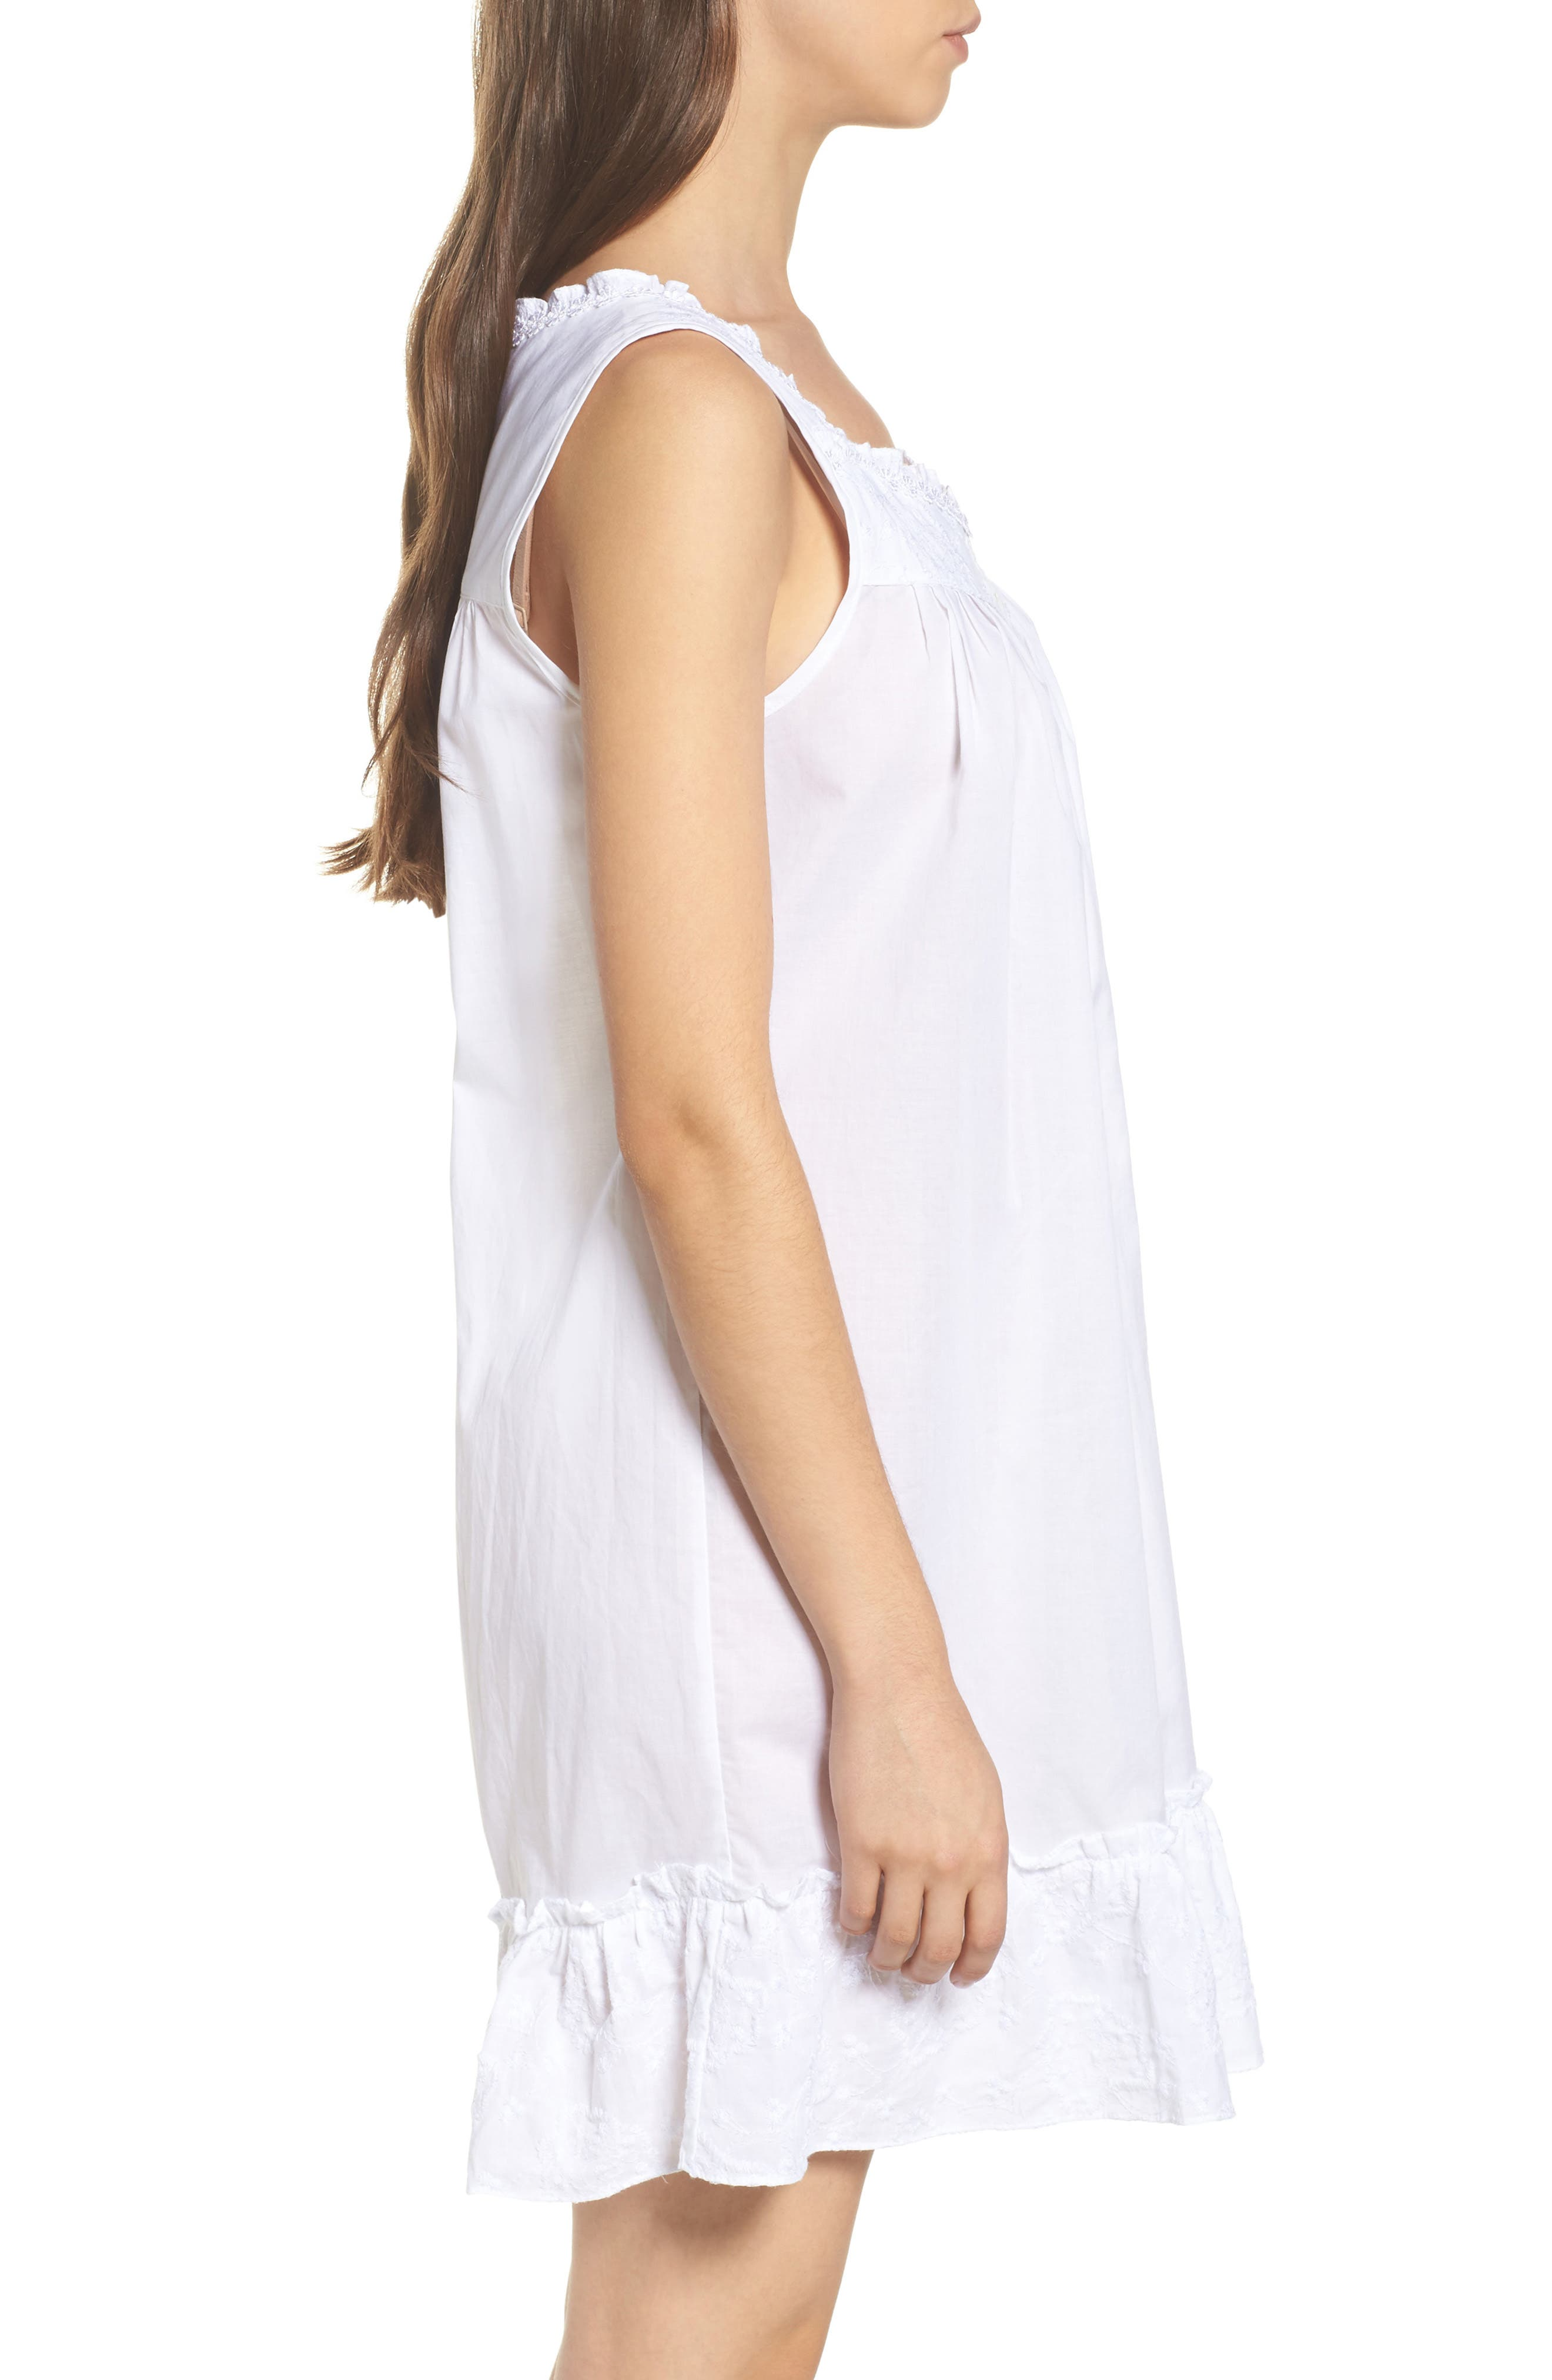 Embroidered Cotton Nightgown,                             Alternate thumbnail 3, color,                             White Floral Embroidery